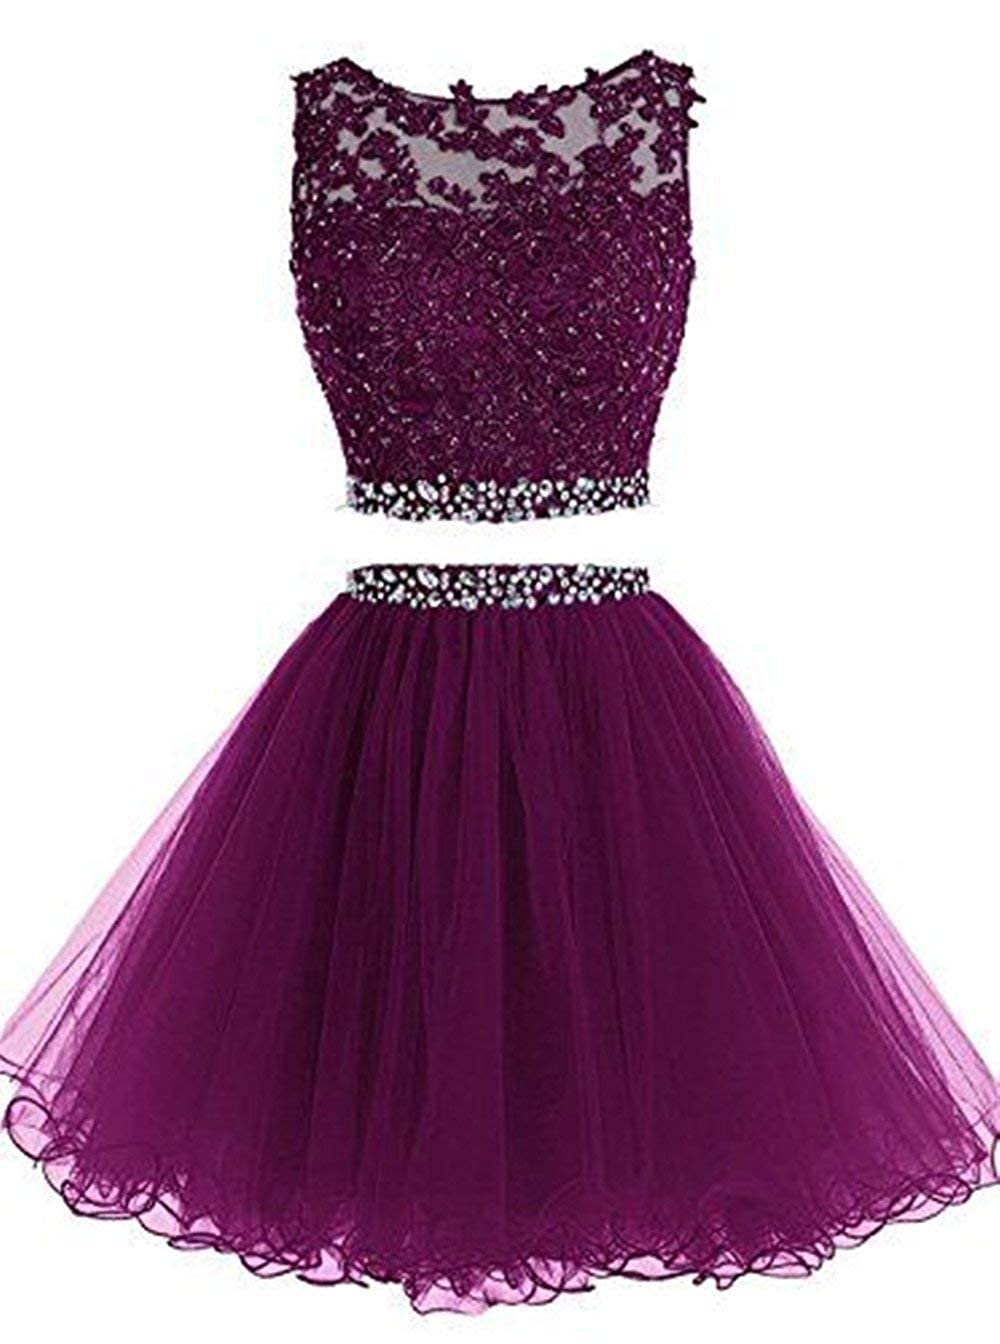 Fuchsia Clothfun Women's Short Beaded 2 Piece Homecoming Dresses Tulle Prom Dress Cocktail Party Gown 042